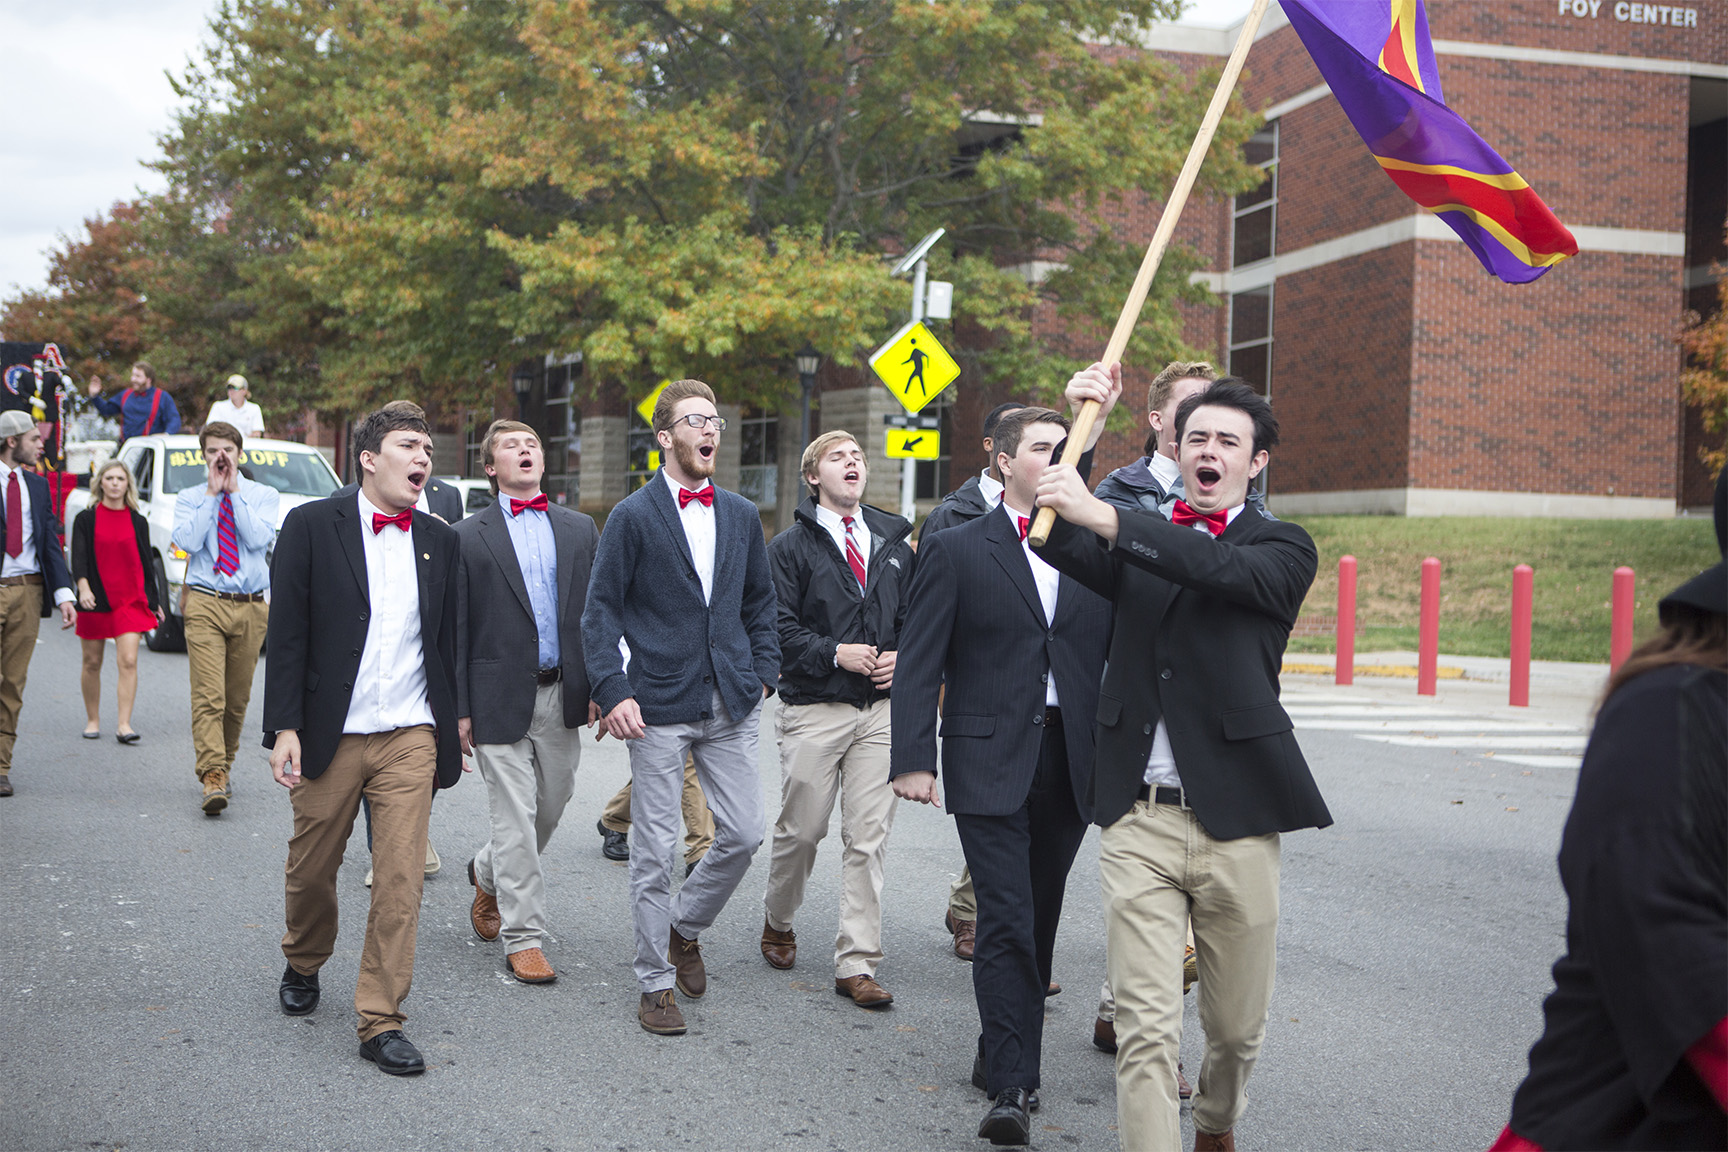 A fraternity during the Homecoming parade